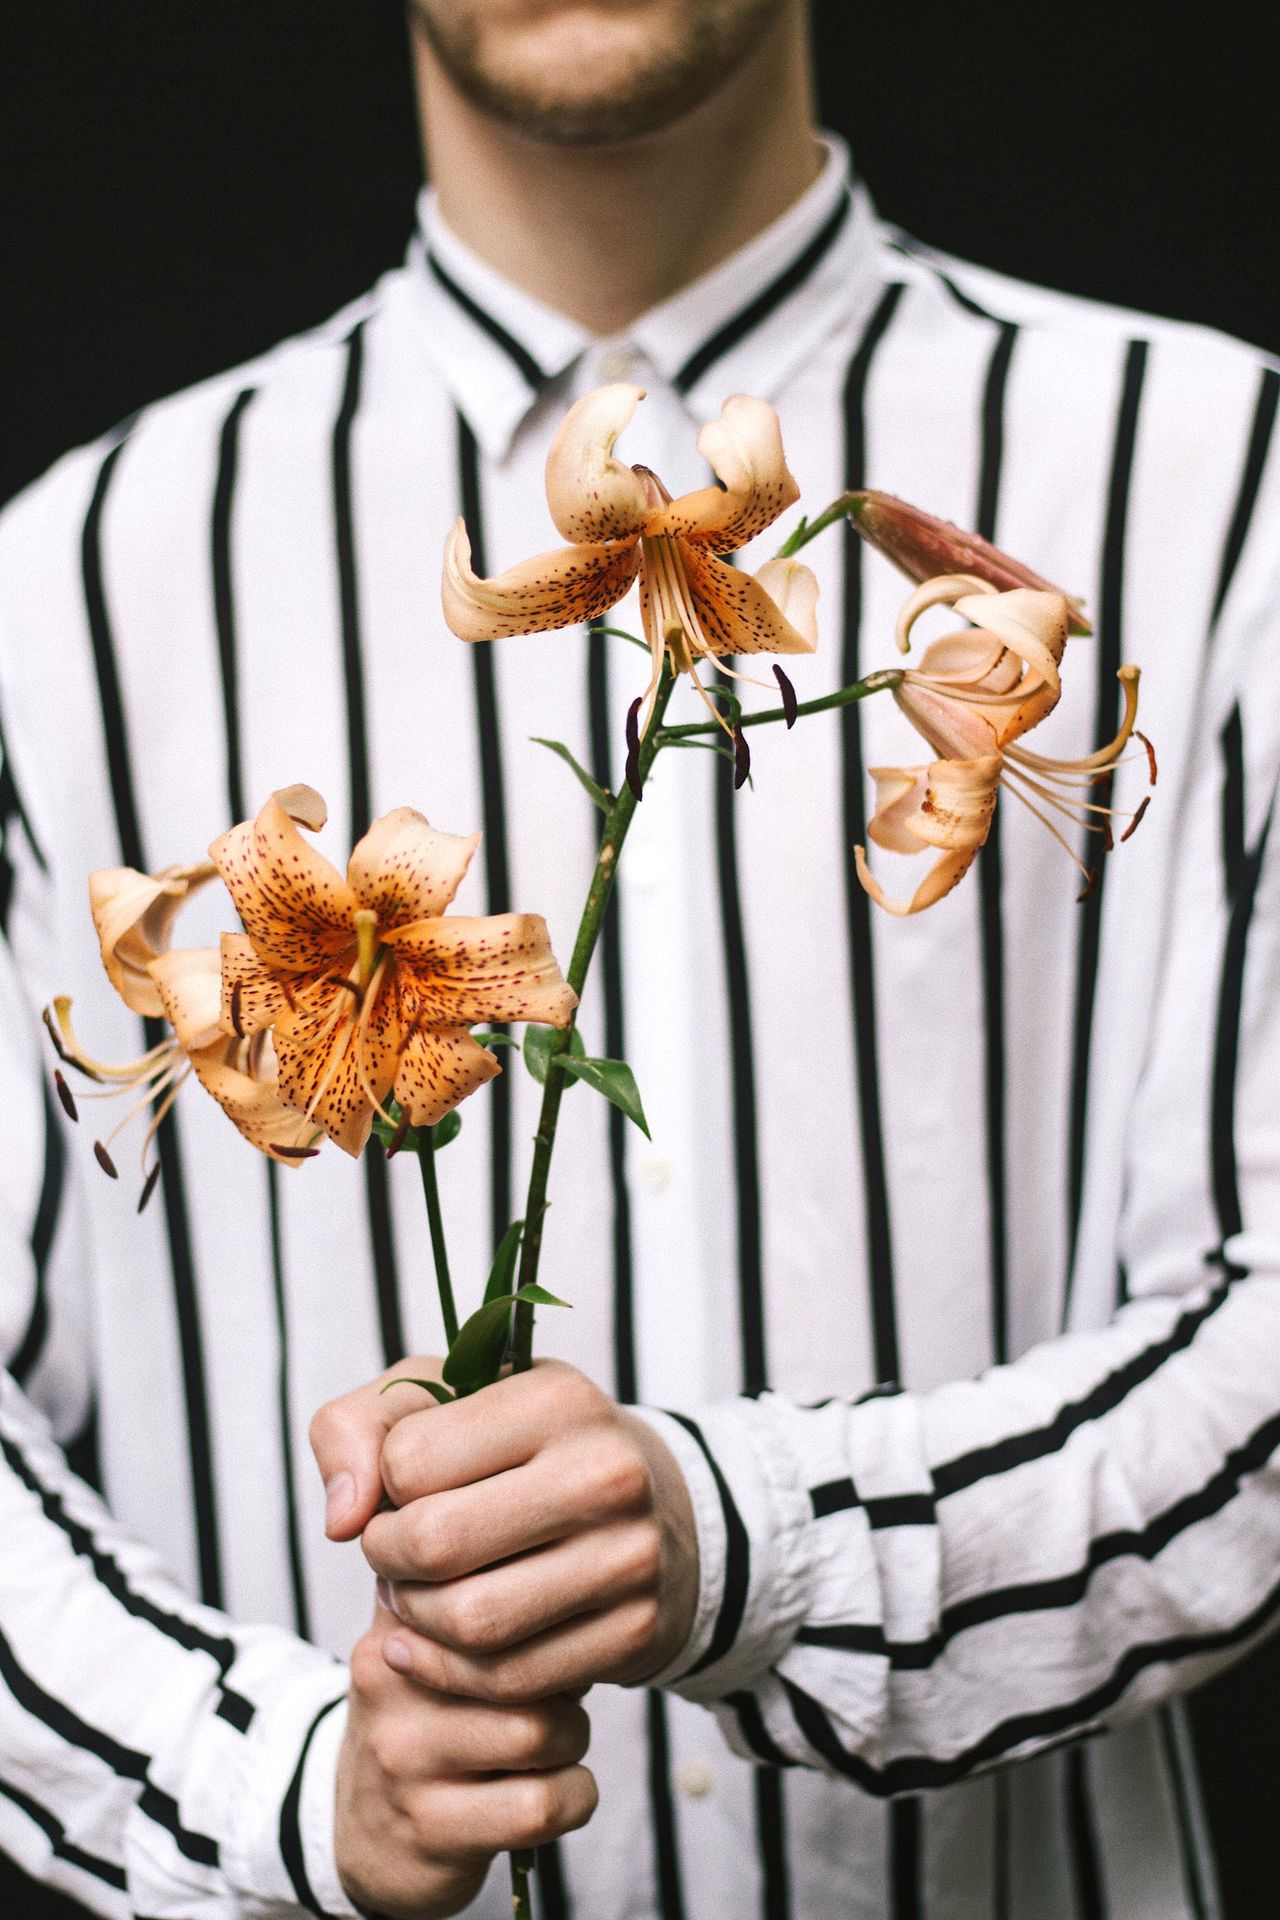 Midsection of man holding flowers